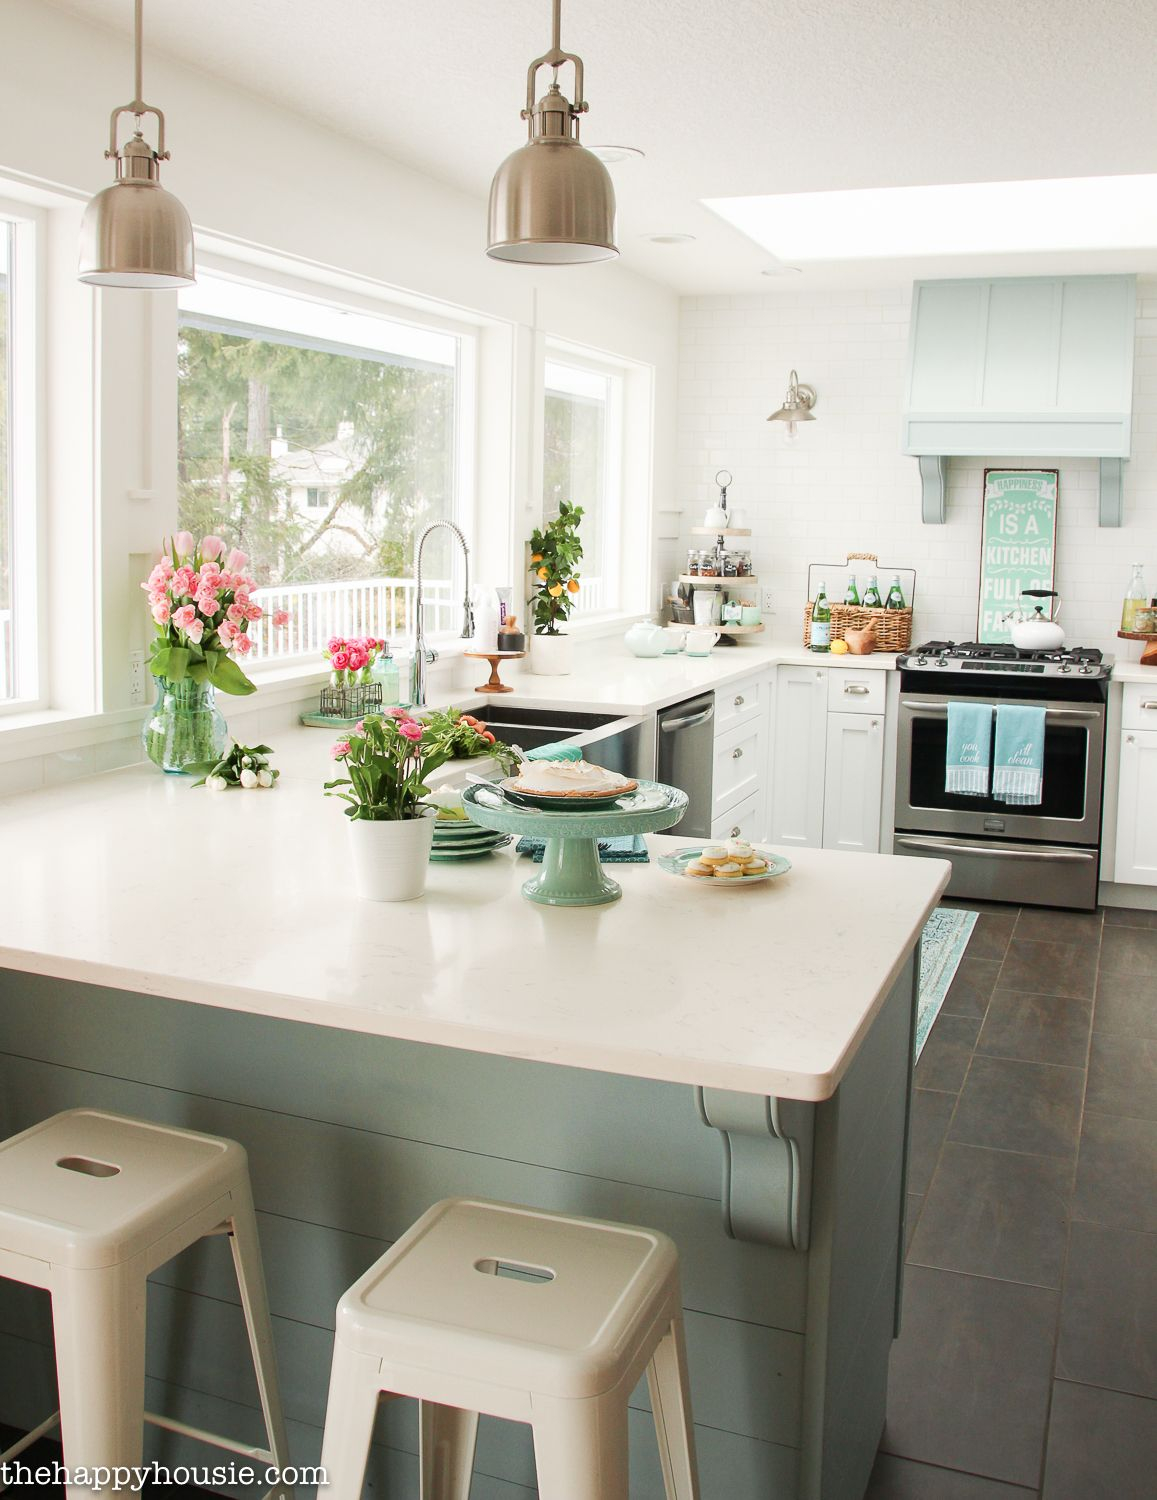 Coastal Cottage Style Spring Kitchen Tour K I T C H E N Beach